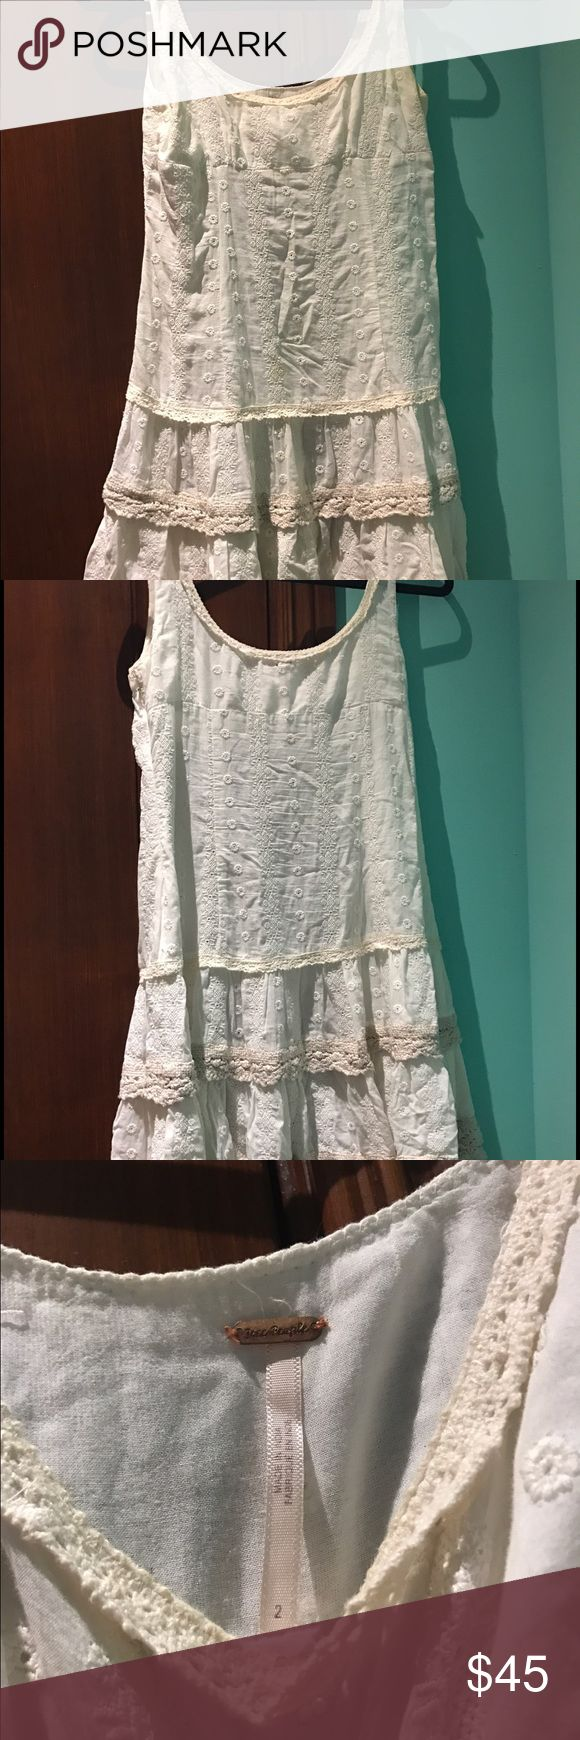 FREE PEOPLE white dress w/ cream and tan trim white/cream dress with lacey trim, super cute for summer or spring. a little see through w/ flowery holes perfect to wear a slip under or just to wear to the beach. Free People Dresses Mini